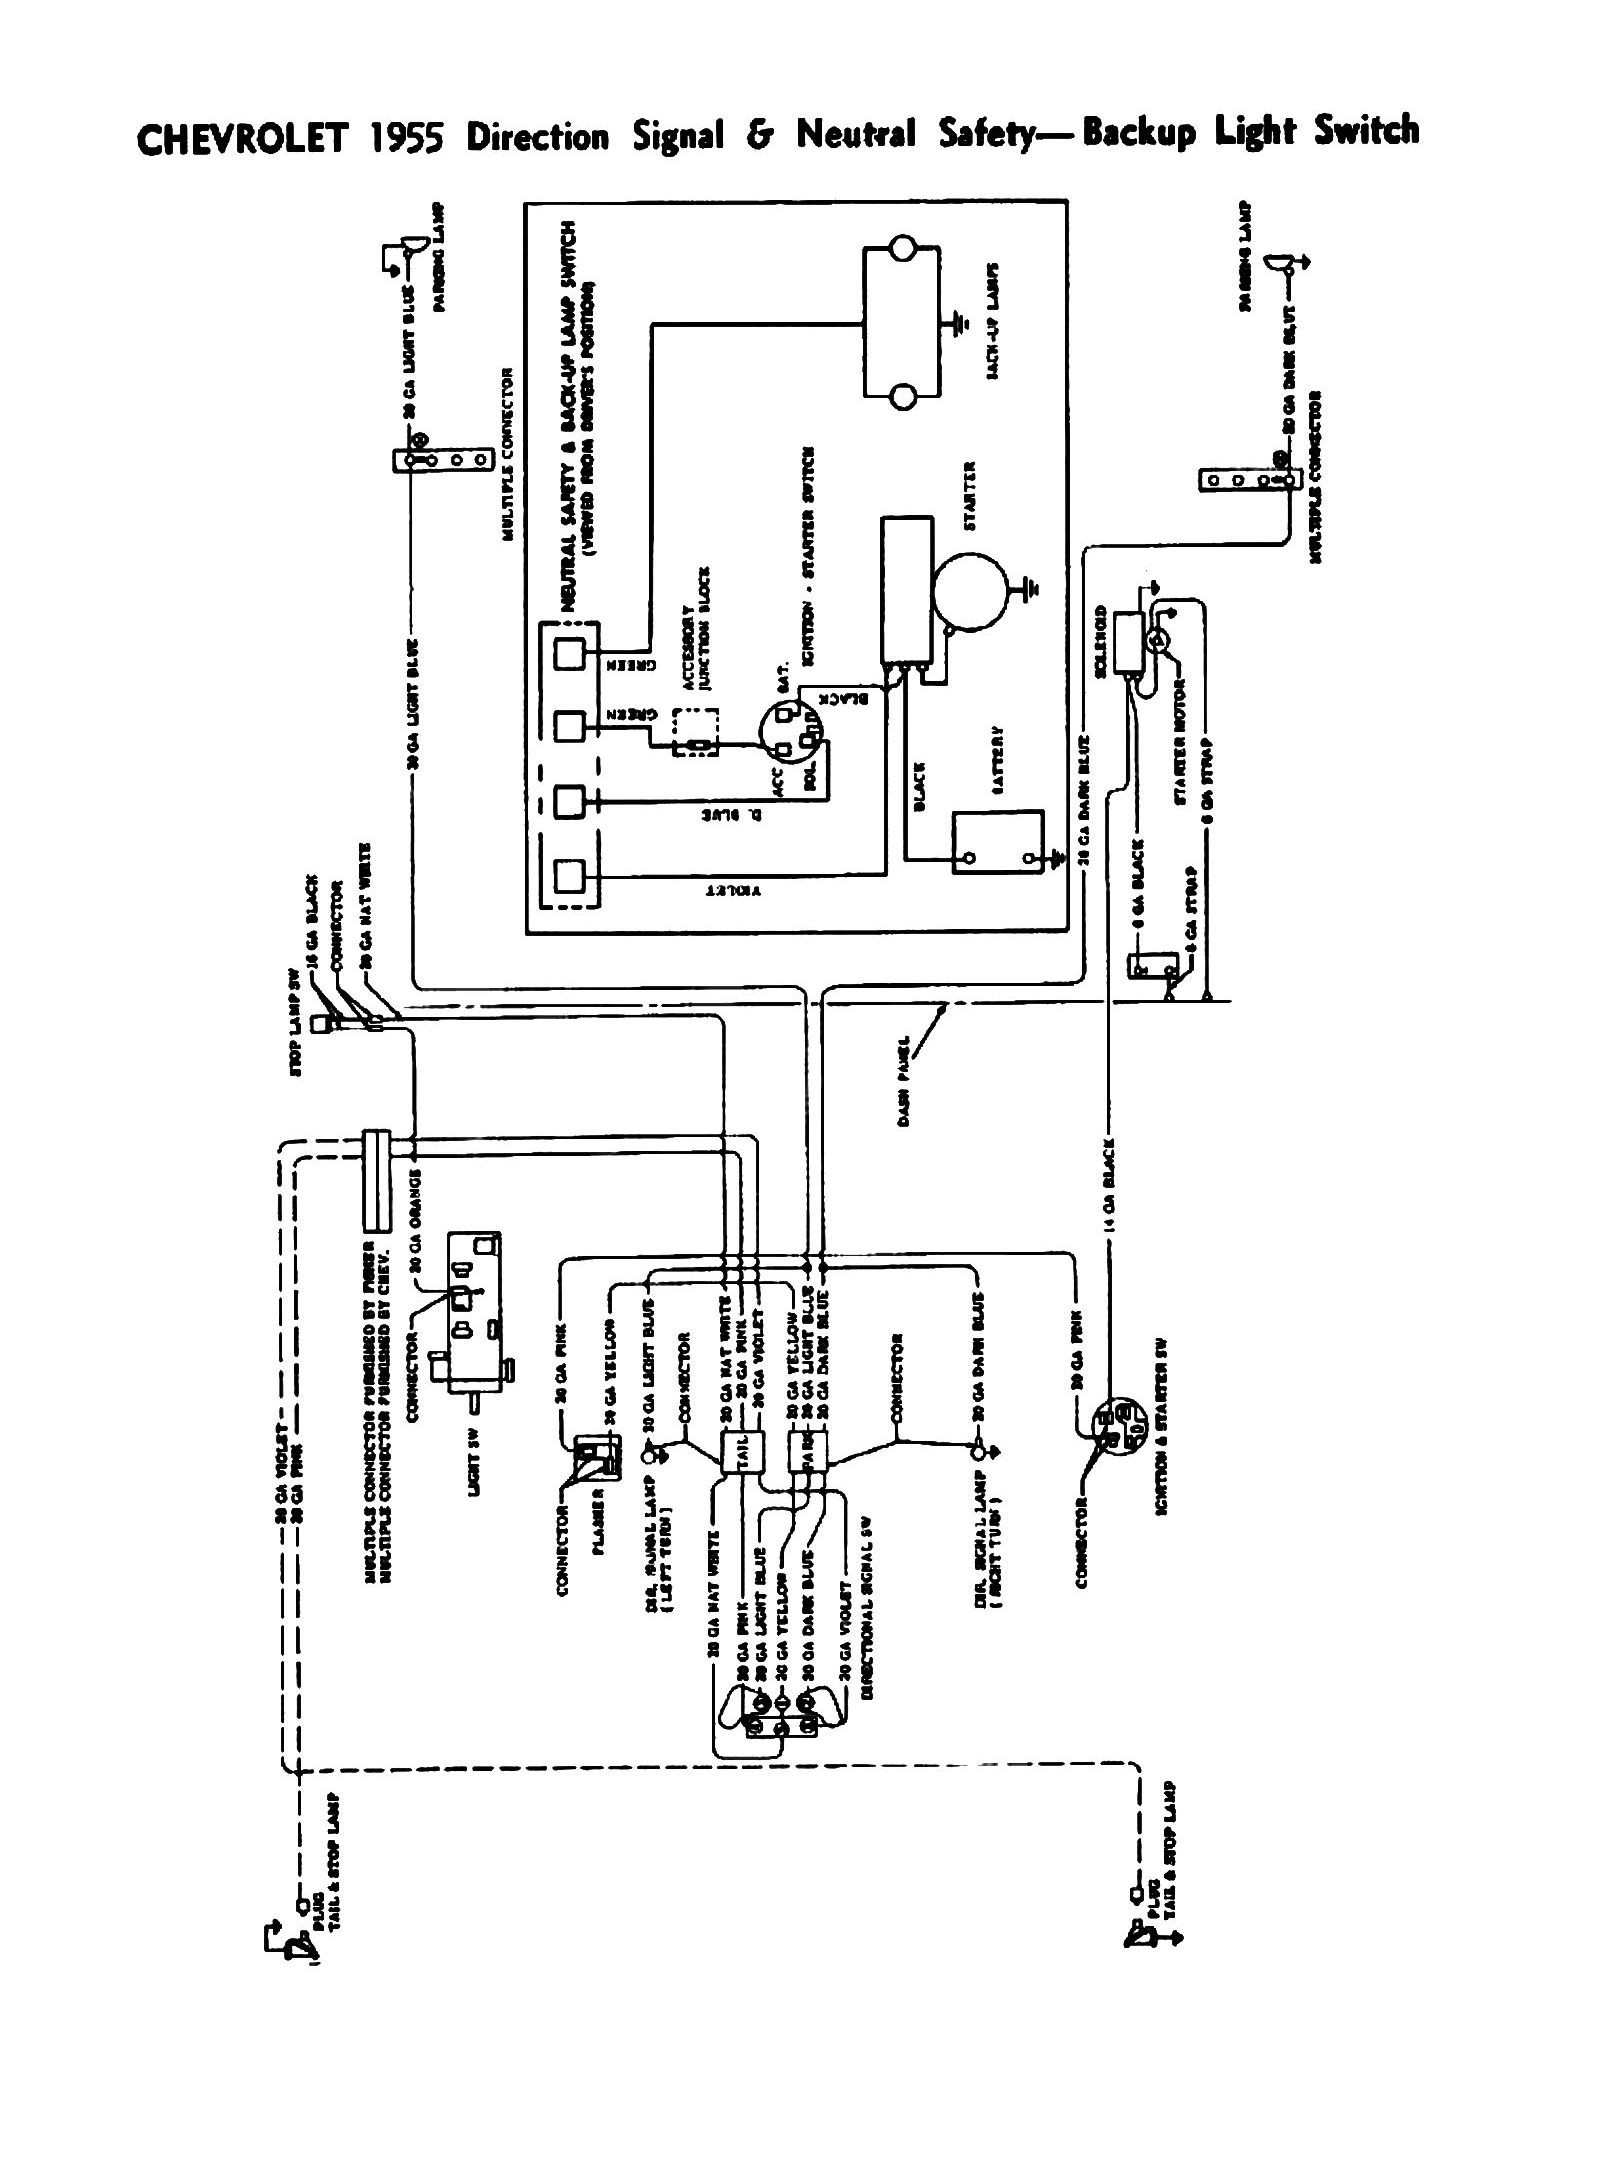 wiring diagram for 1955 chevy